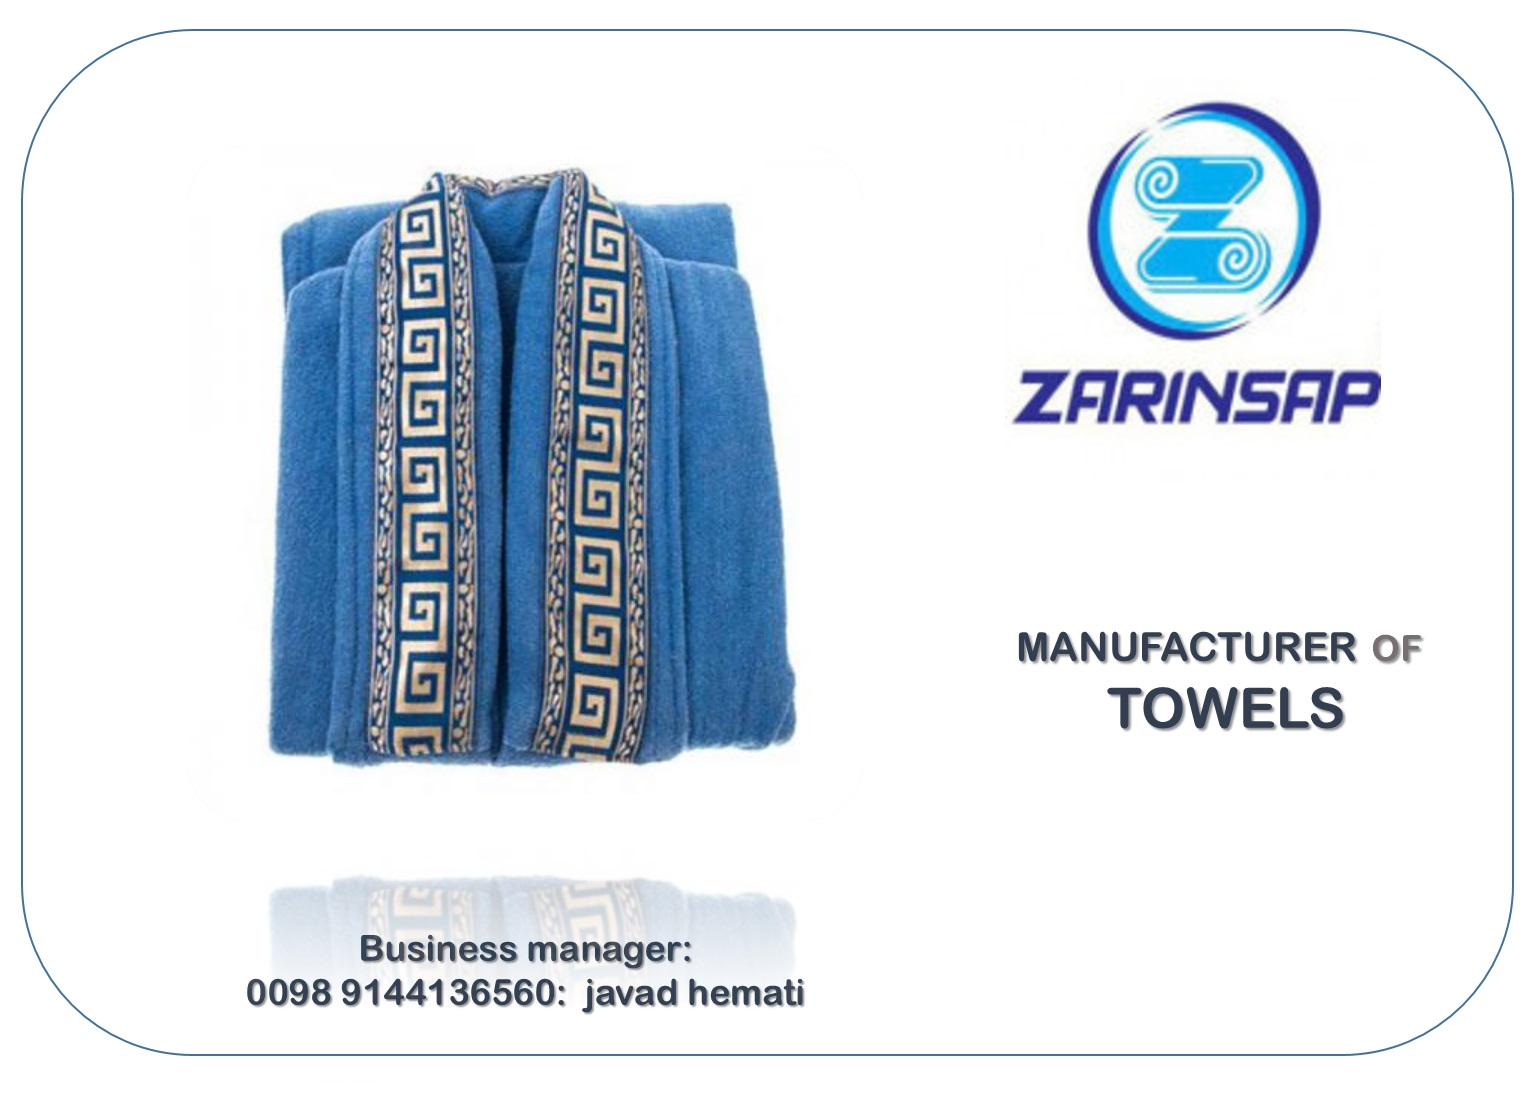 Attributes of tunic towels